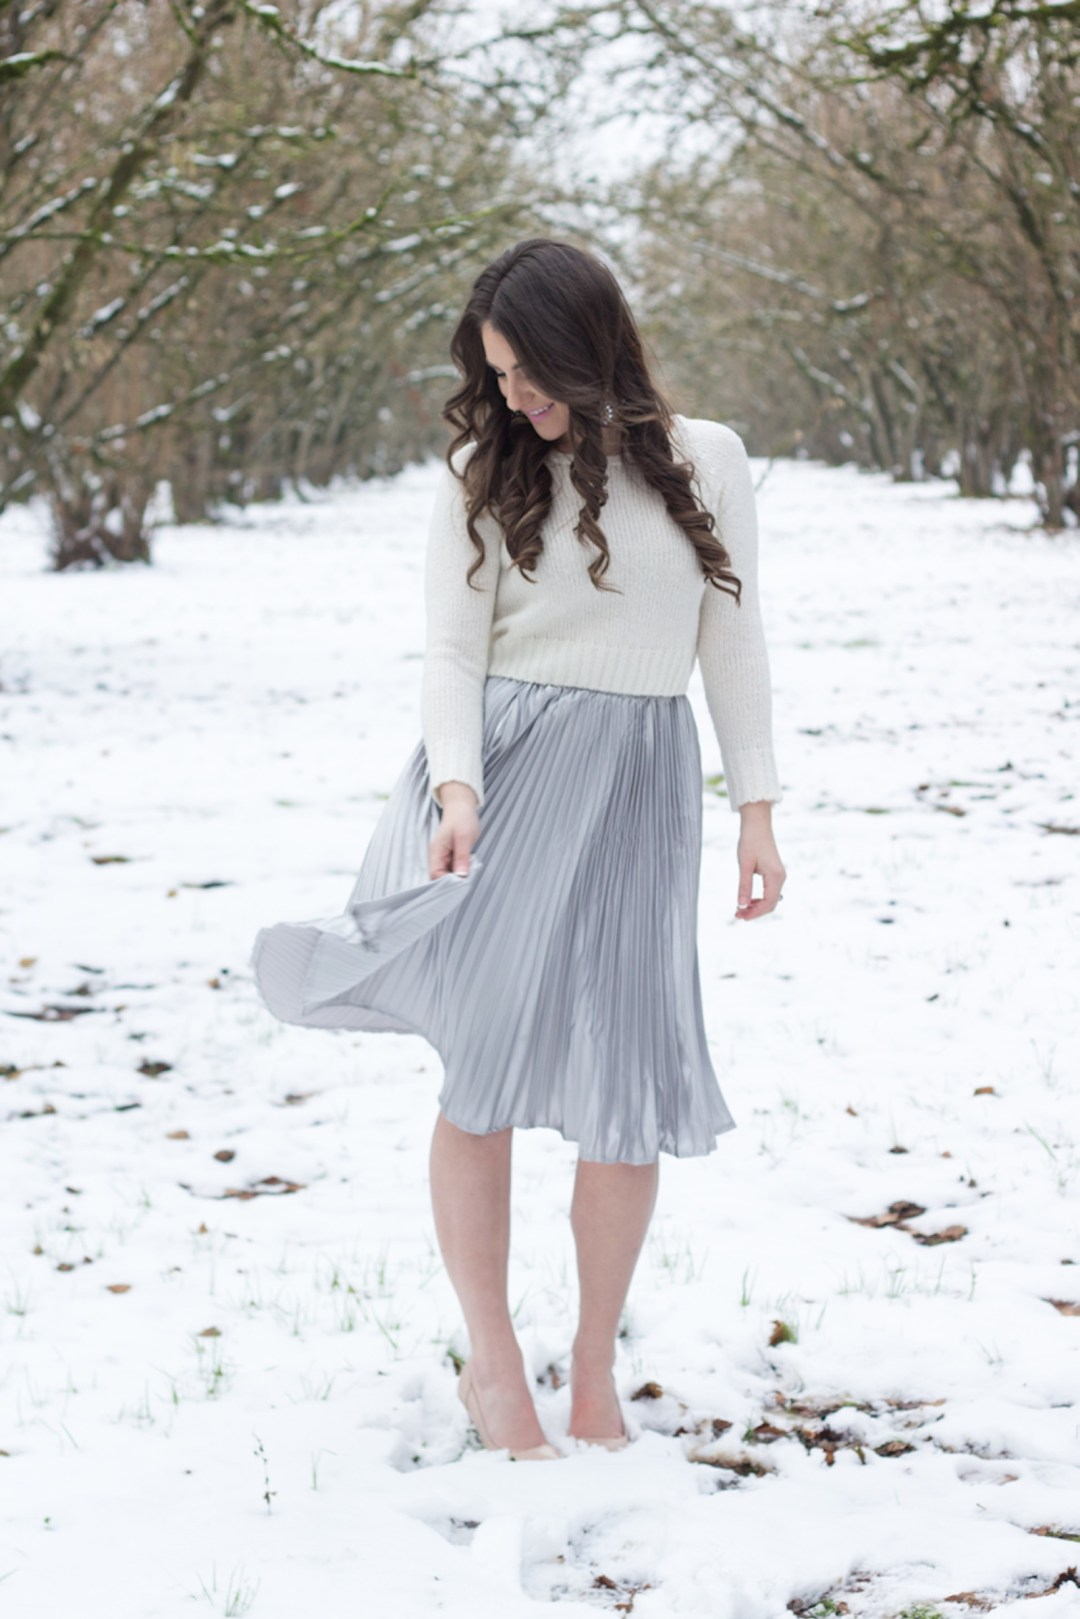 skirt, snow, asos, one hope, champagne, new year, sweater